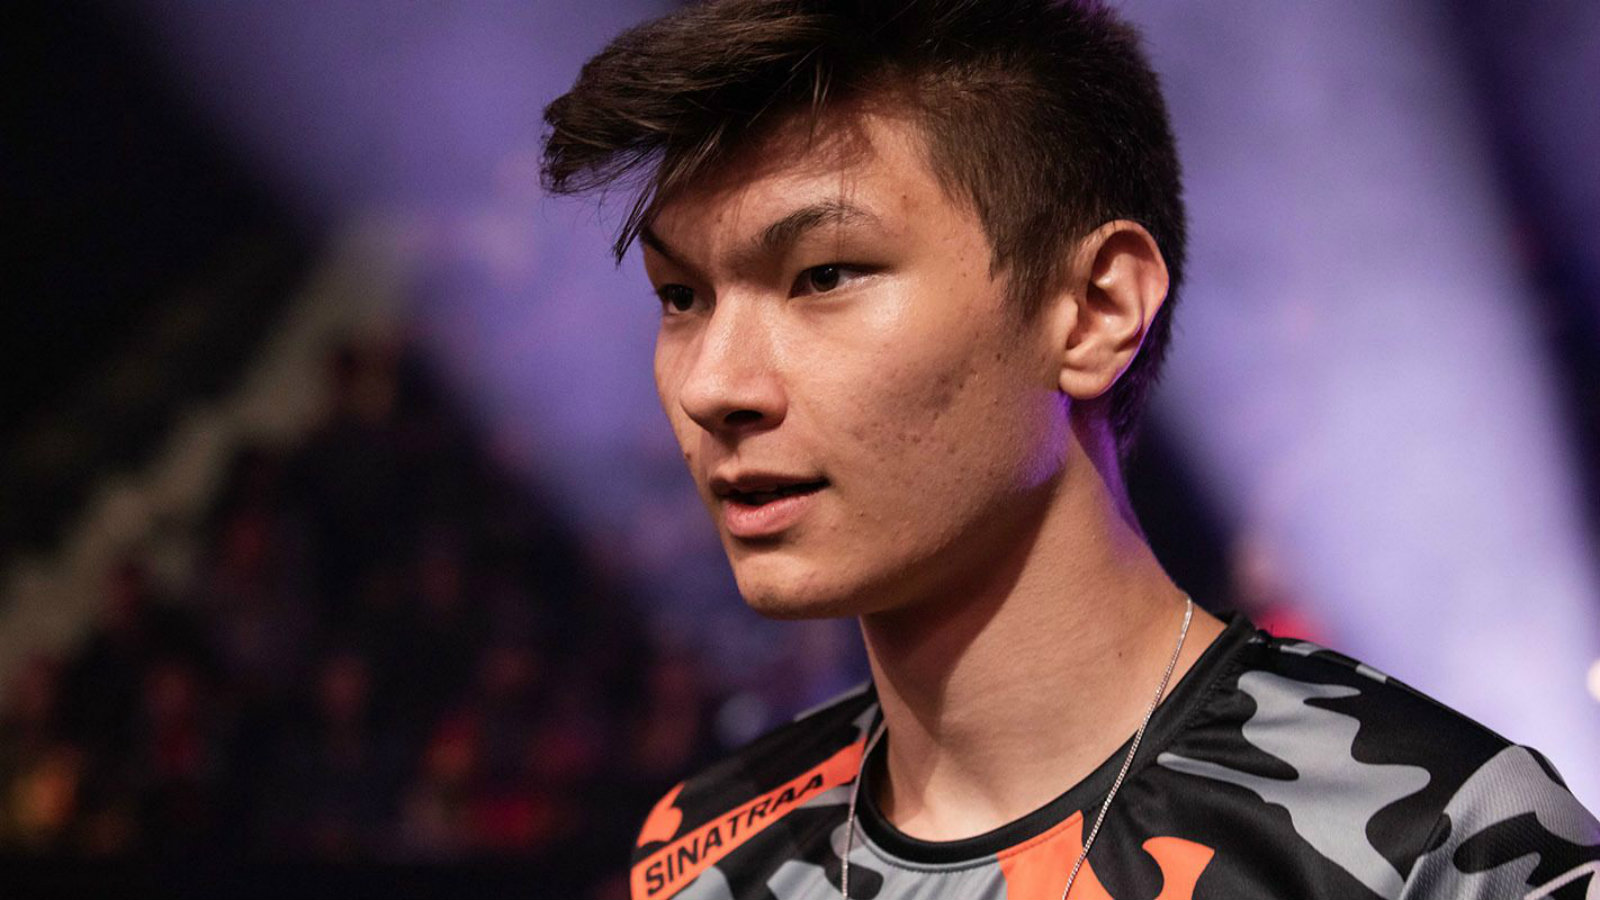 Valorant pro Jay 'Sinatraa' Won accused of sexual assault by former partner